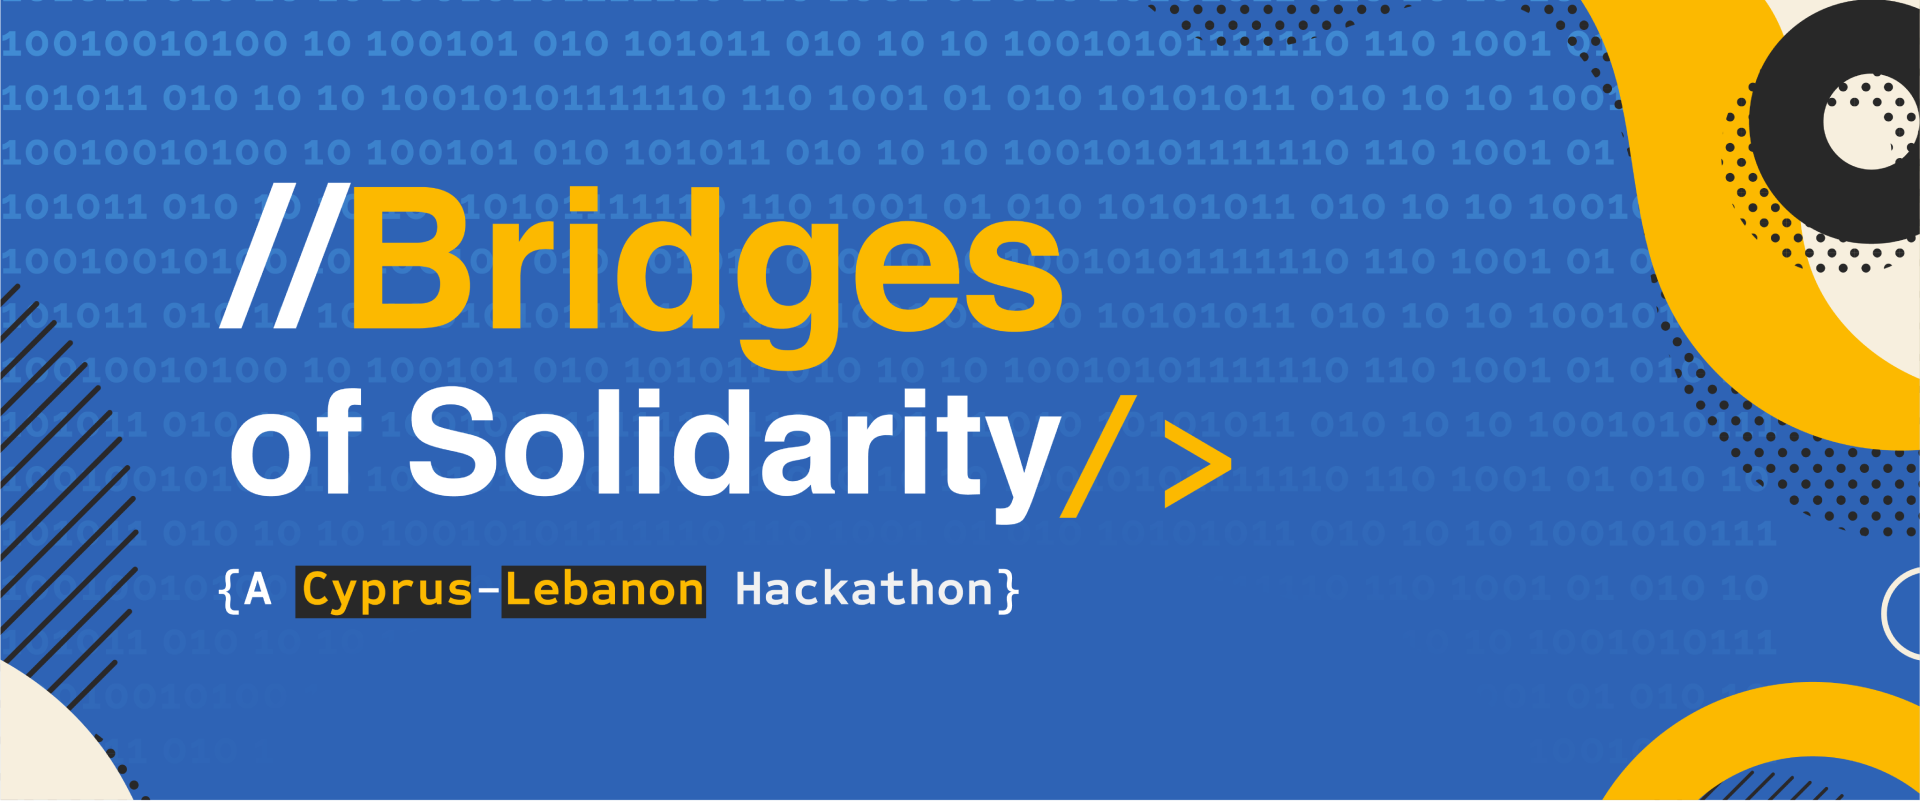 Hackathon Website_1536x640 1